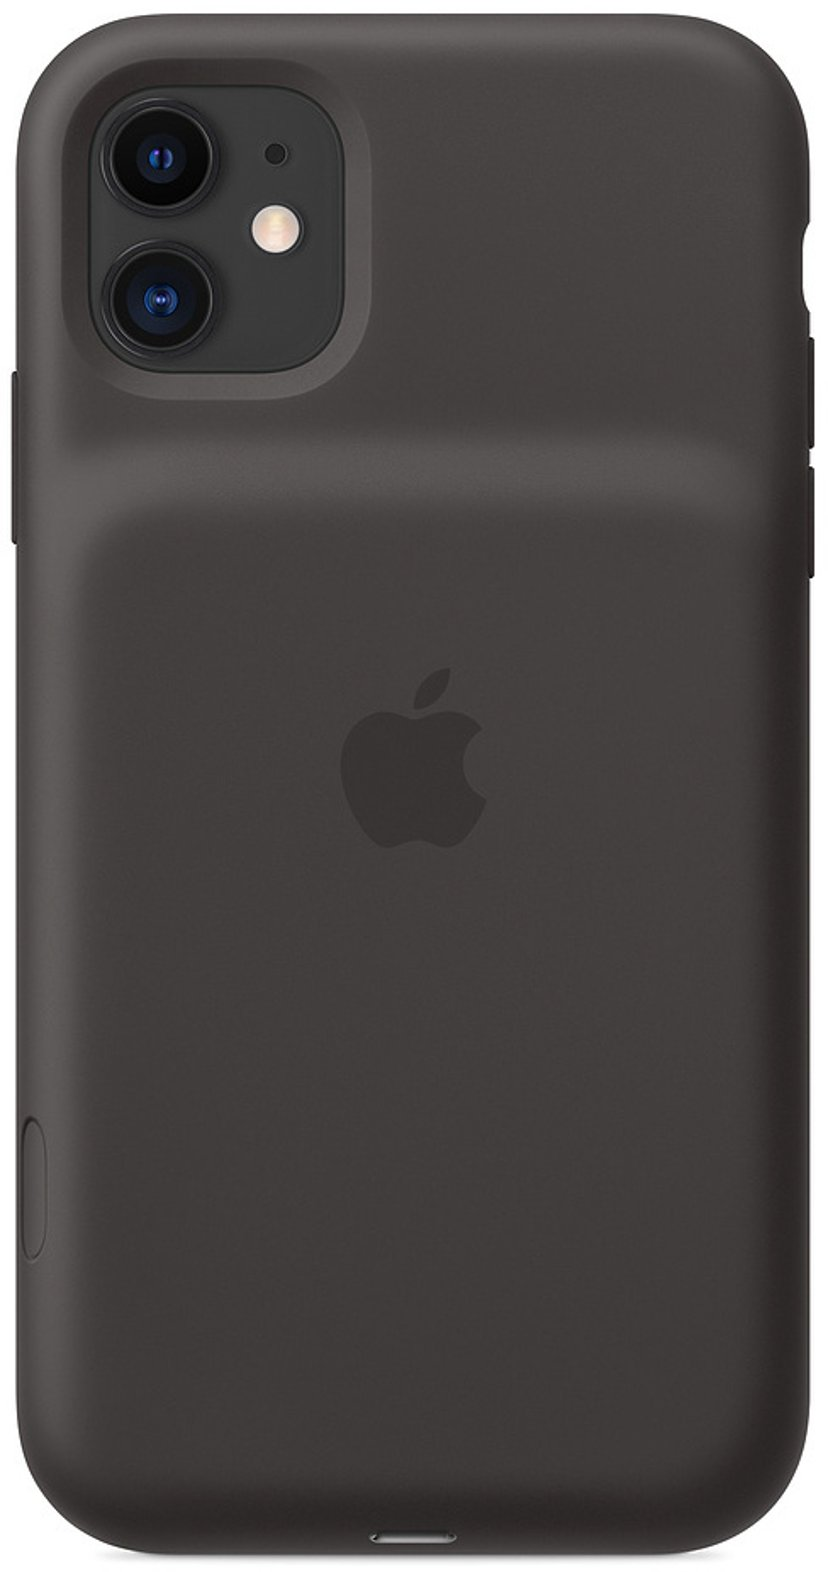 Apple Smart Battery Case With Wireless Charging iPhone 11 Sort